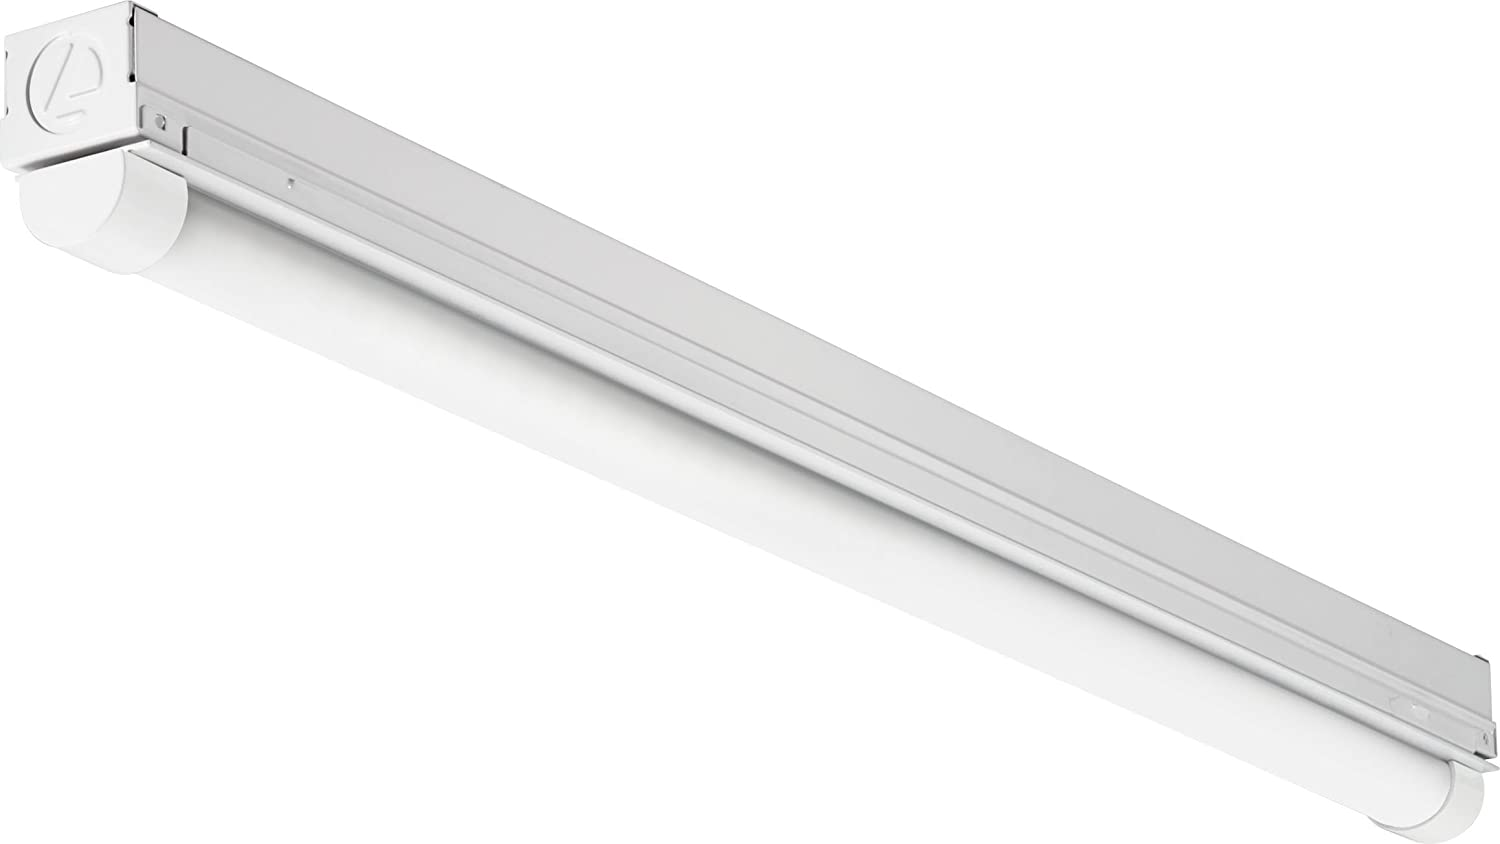 Lithonia Lighting CMNS L23 1LL 120V 840 M6 Non-Dimmable Strip Light, 1 Led Lamp, 120 V, 1150 Lumens, 4000 K, CRI 80